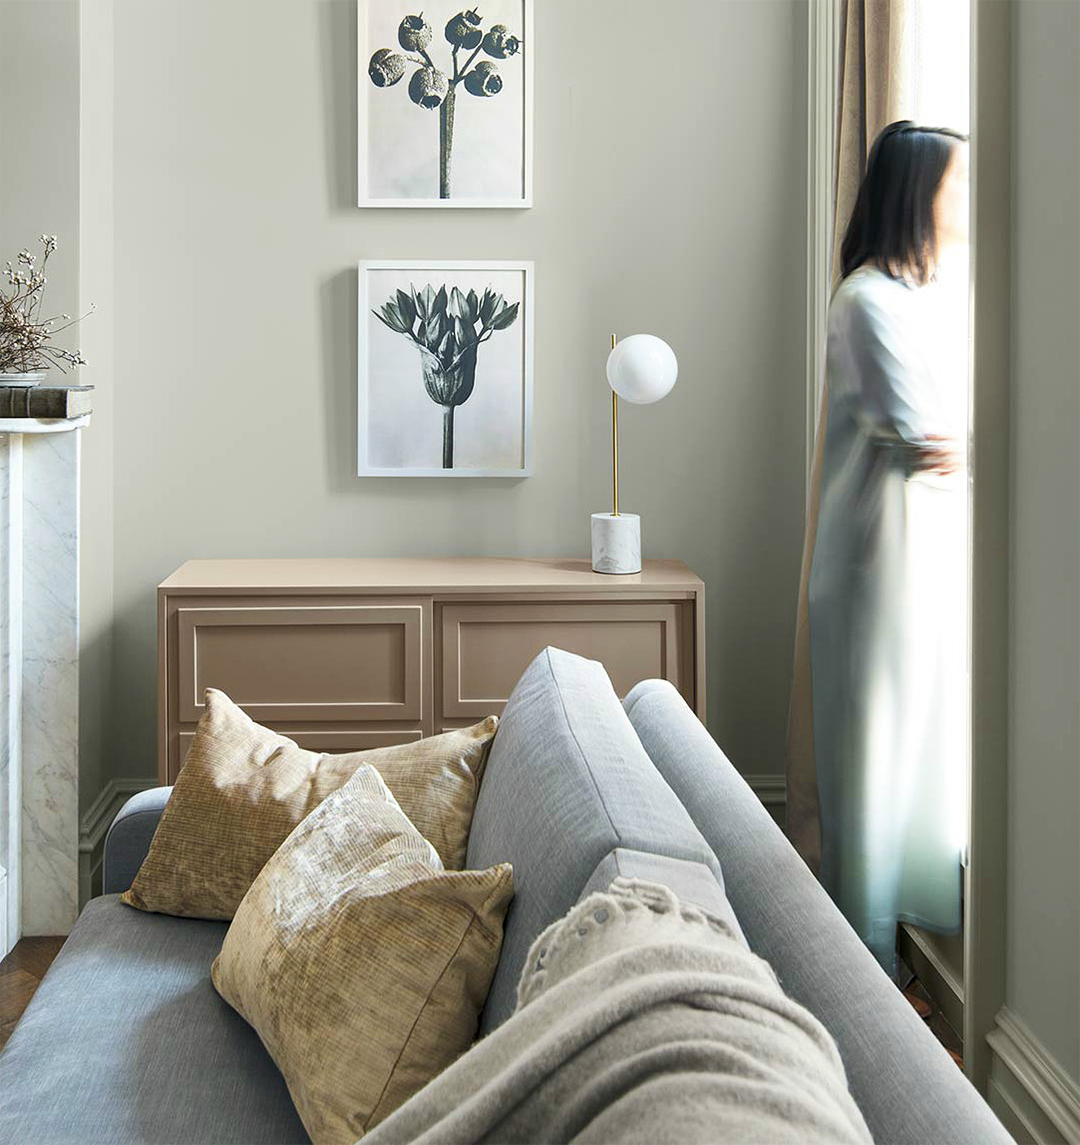 soft paint colors in living room with artwork chest of drawers and sofa with woman looking out window